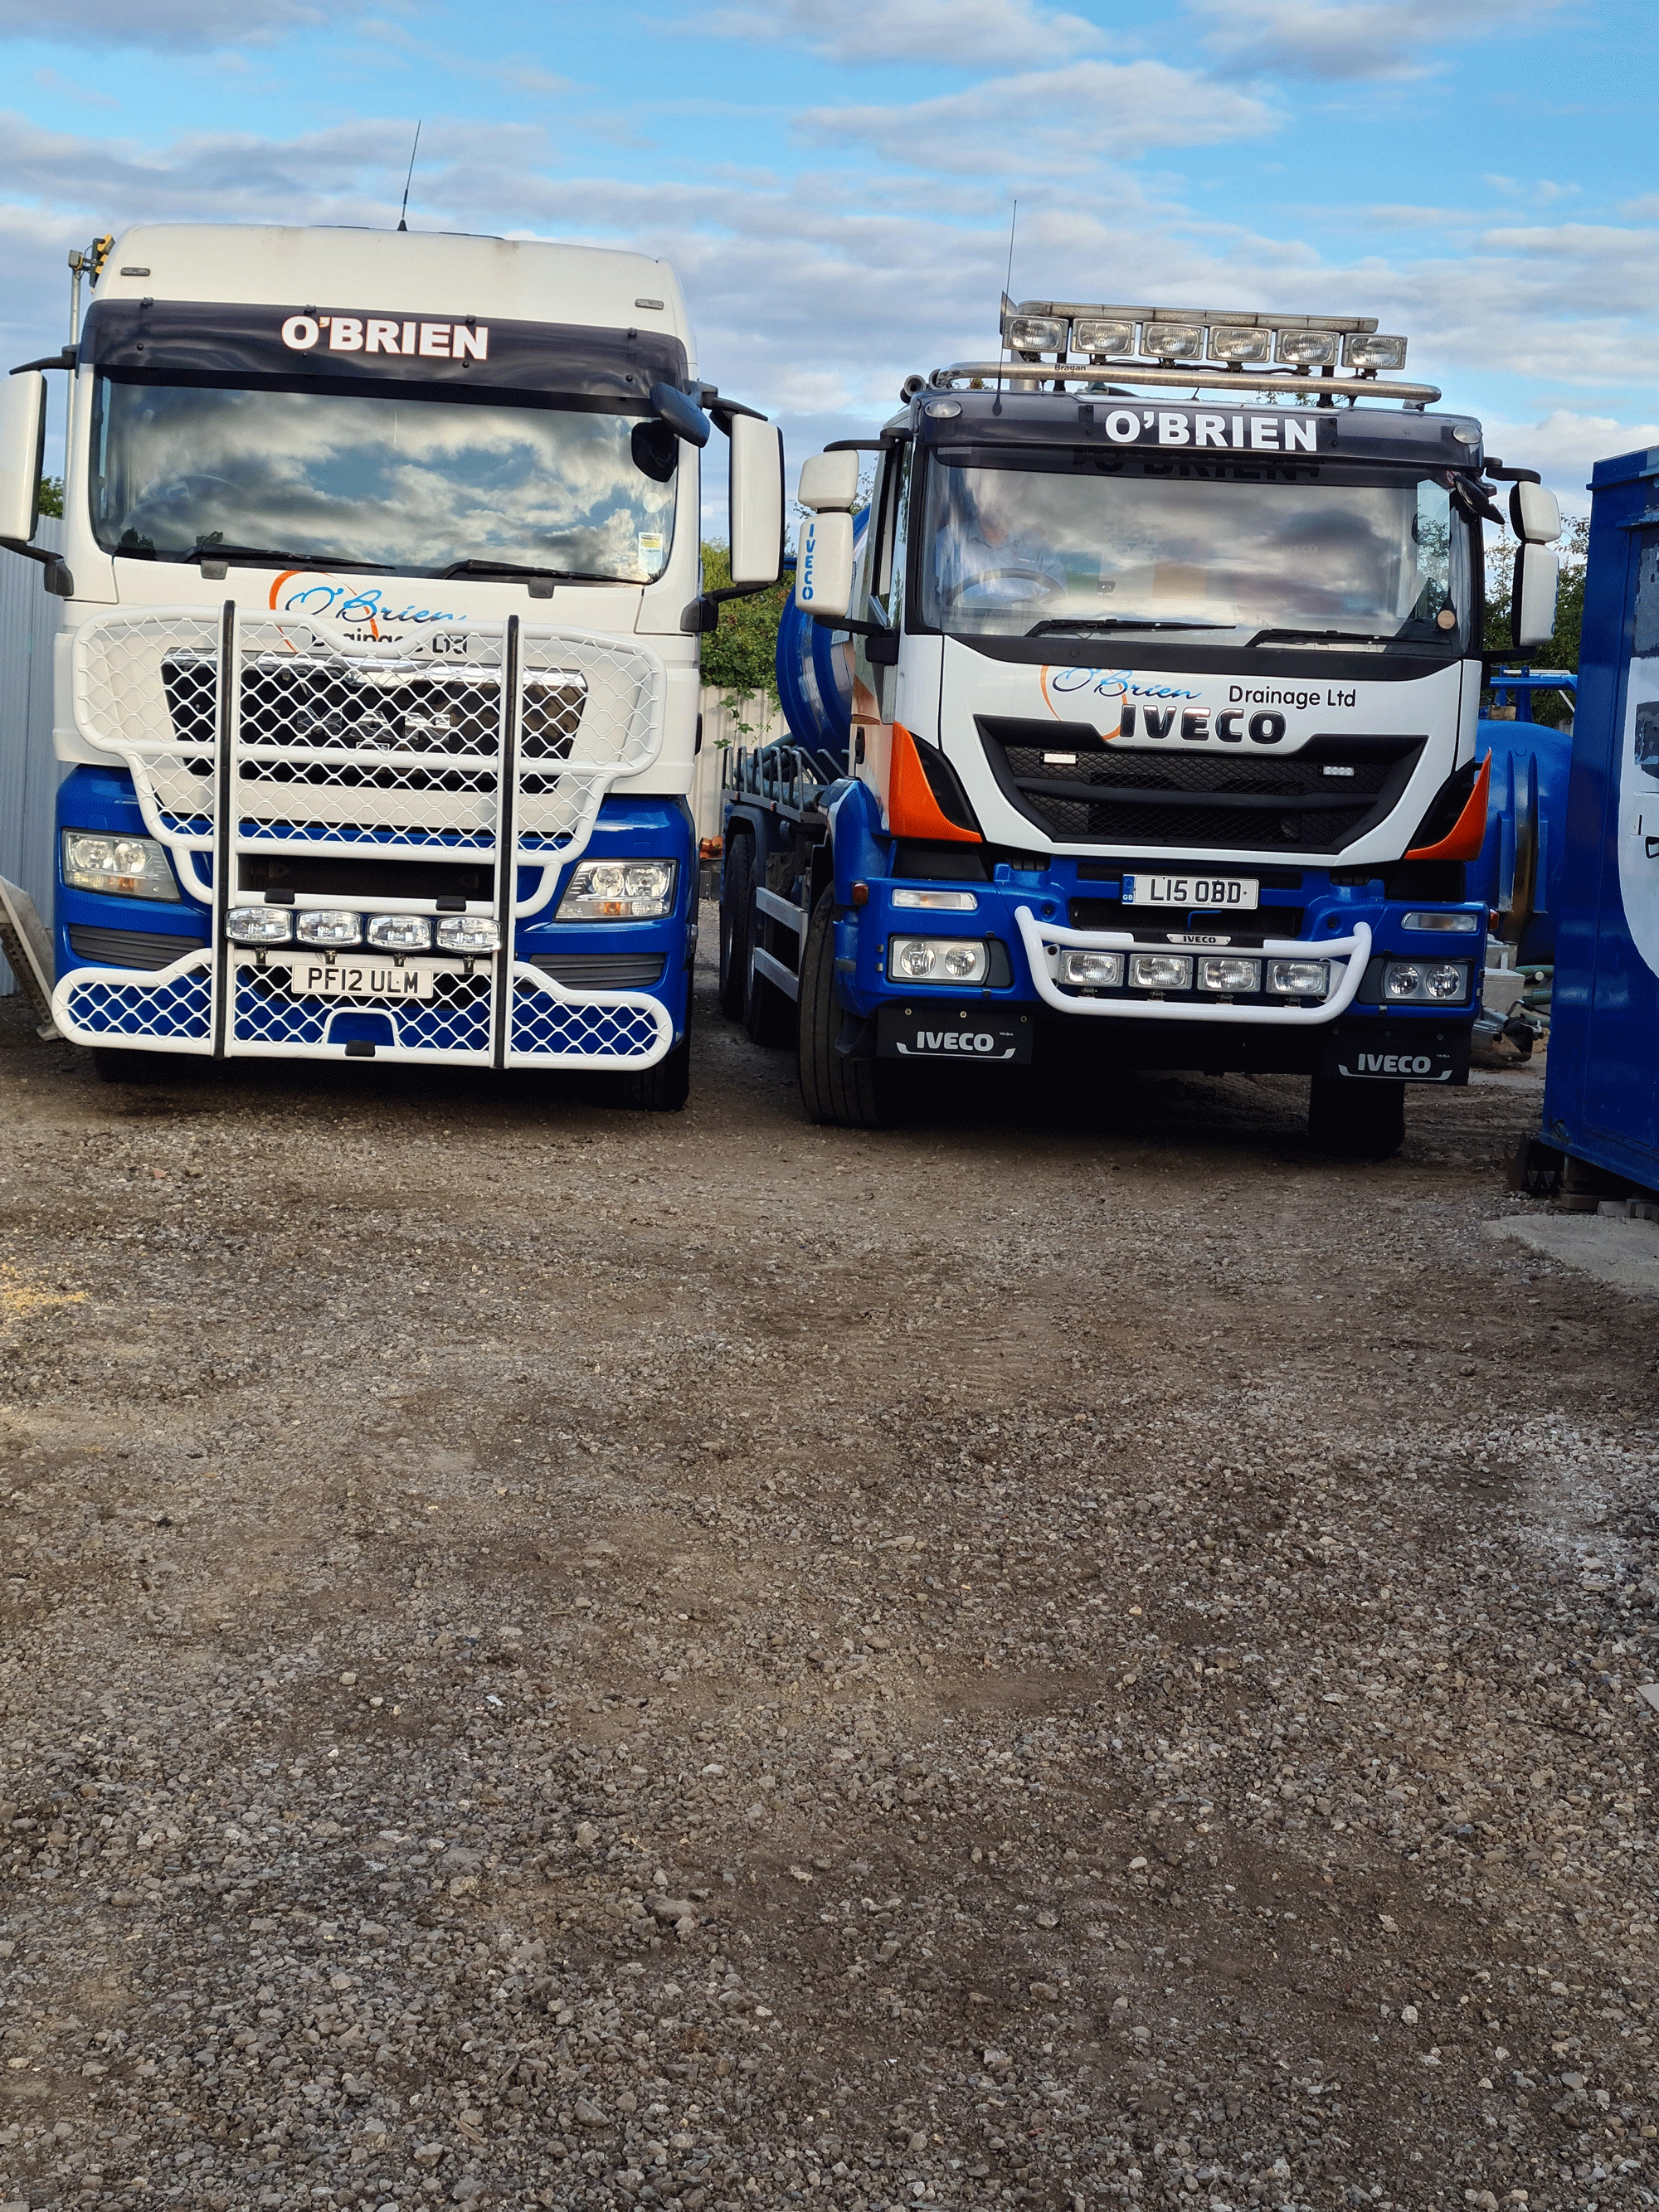 Both out for a full day of Tank Emptying